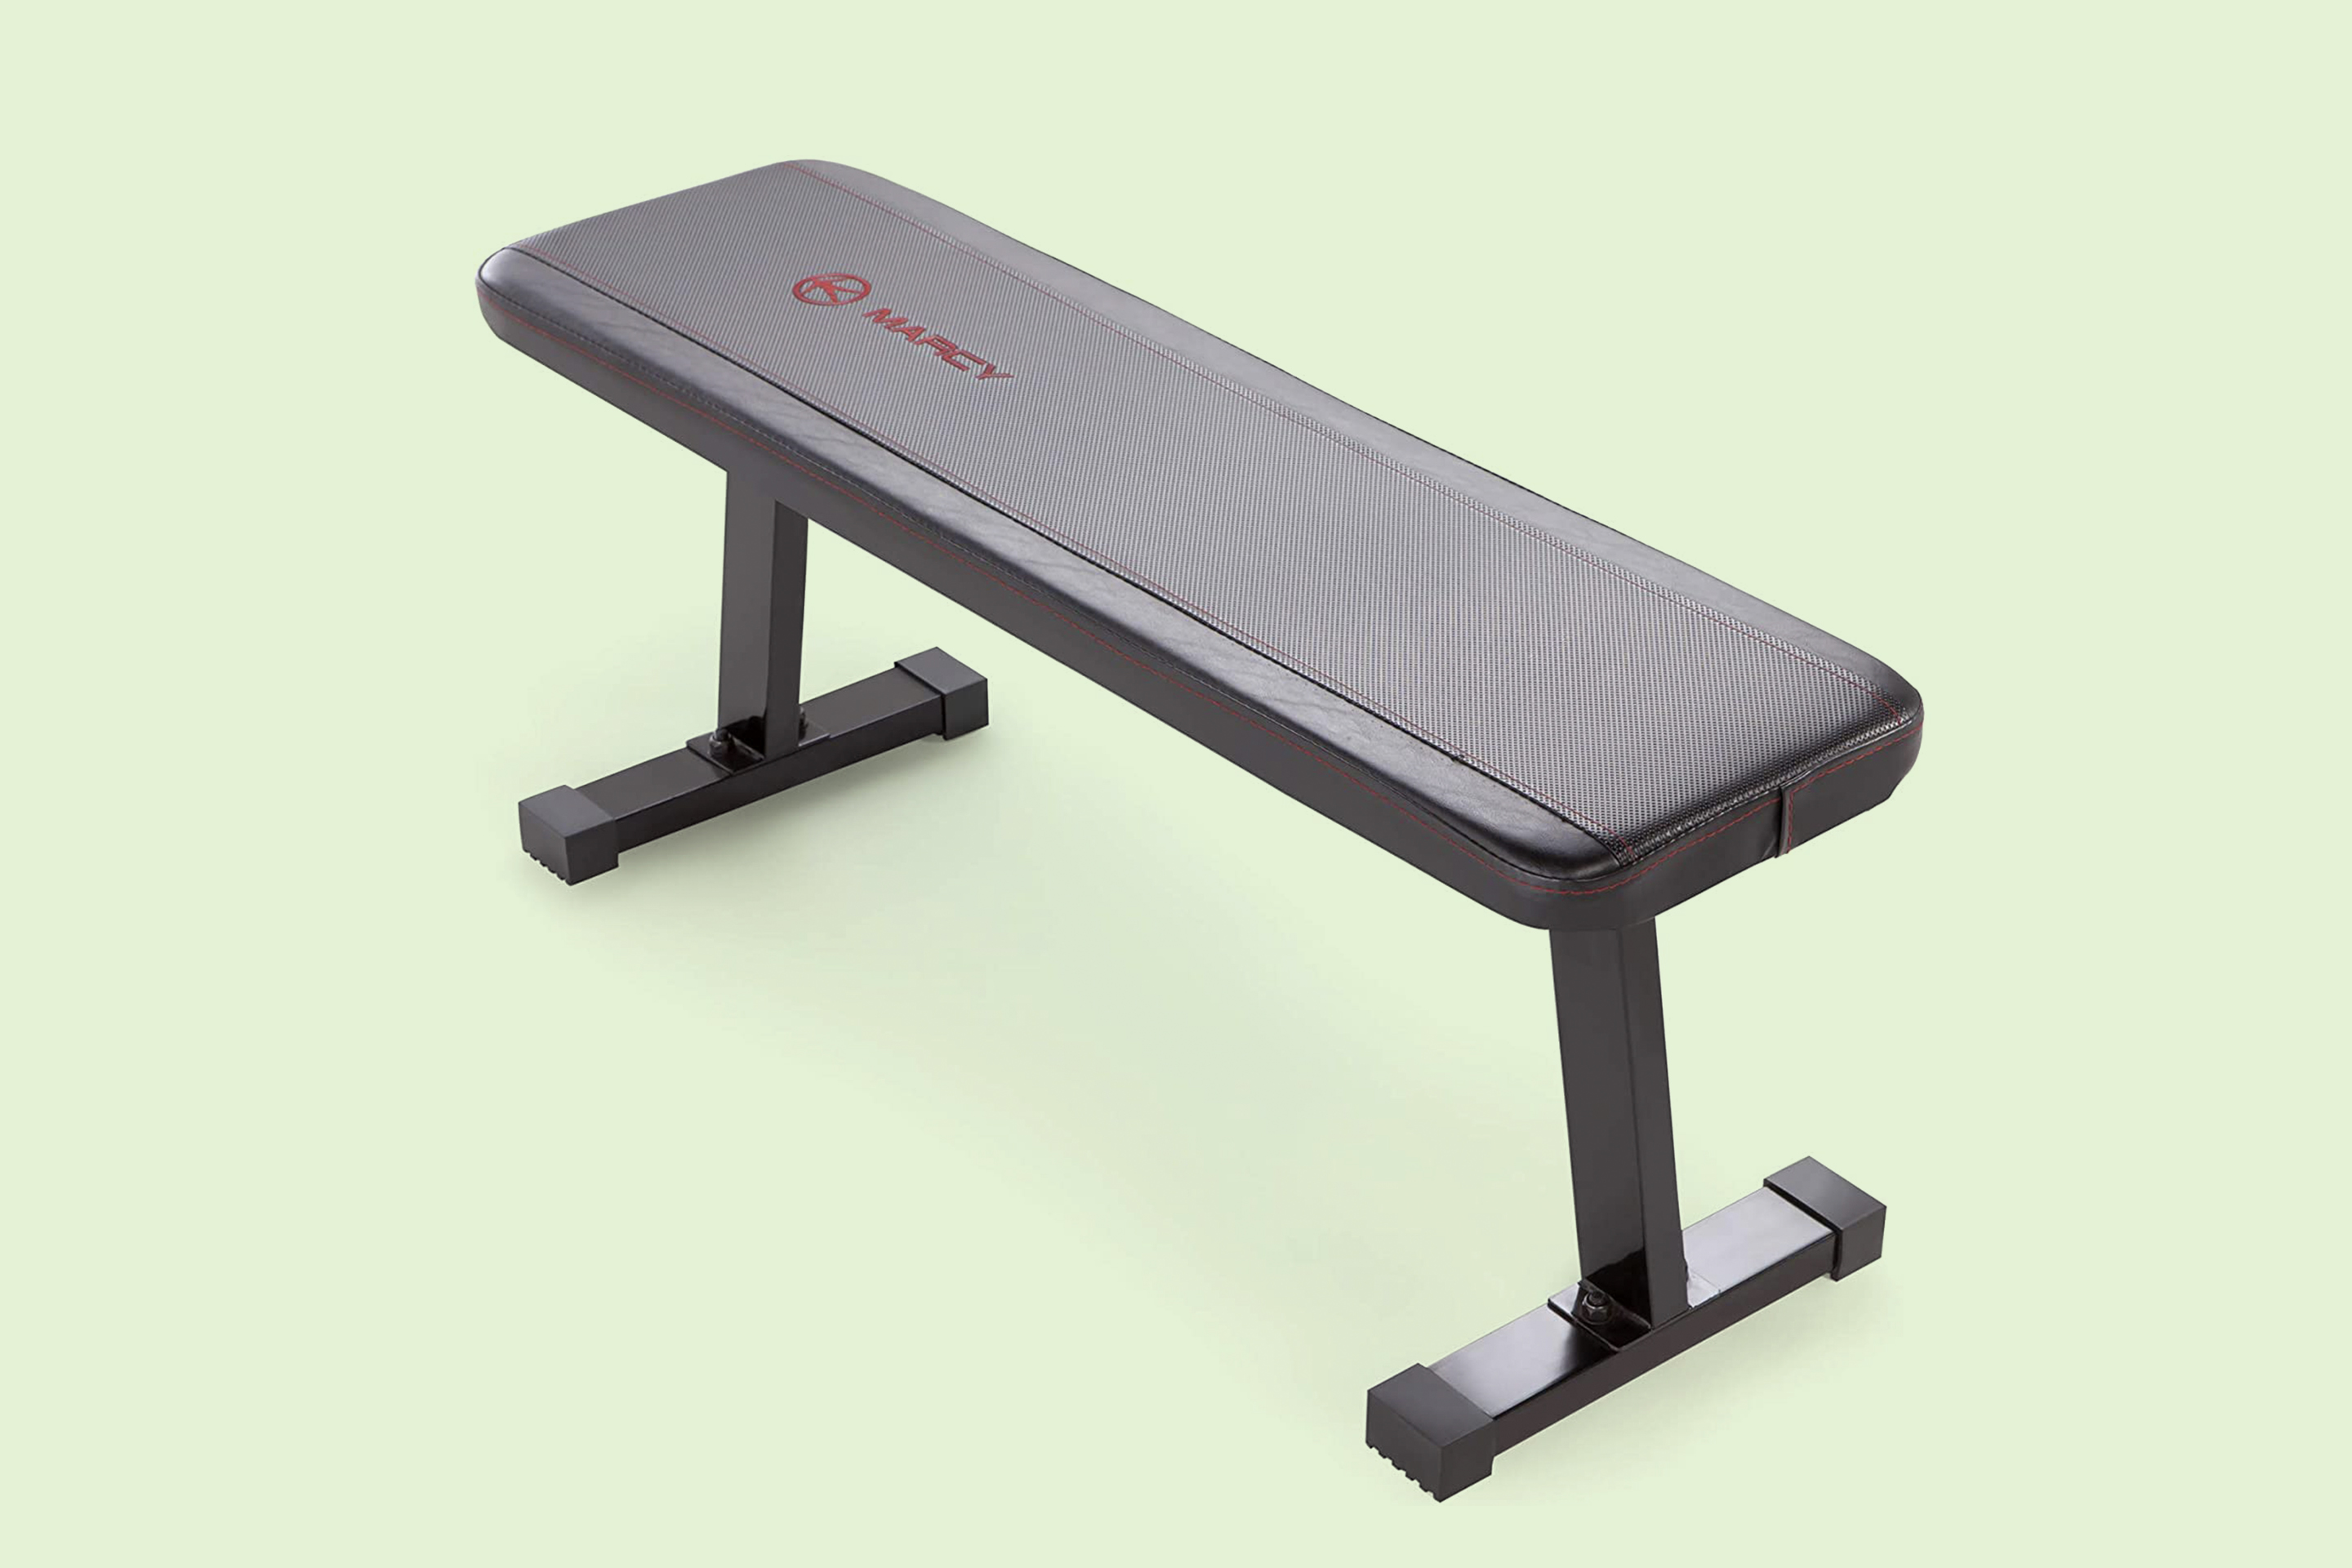 Marcy Flat Utility Weight Bench